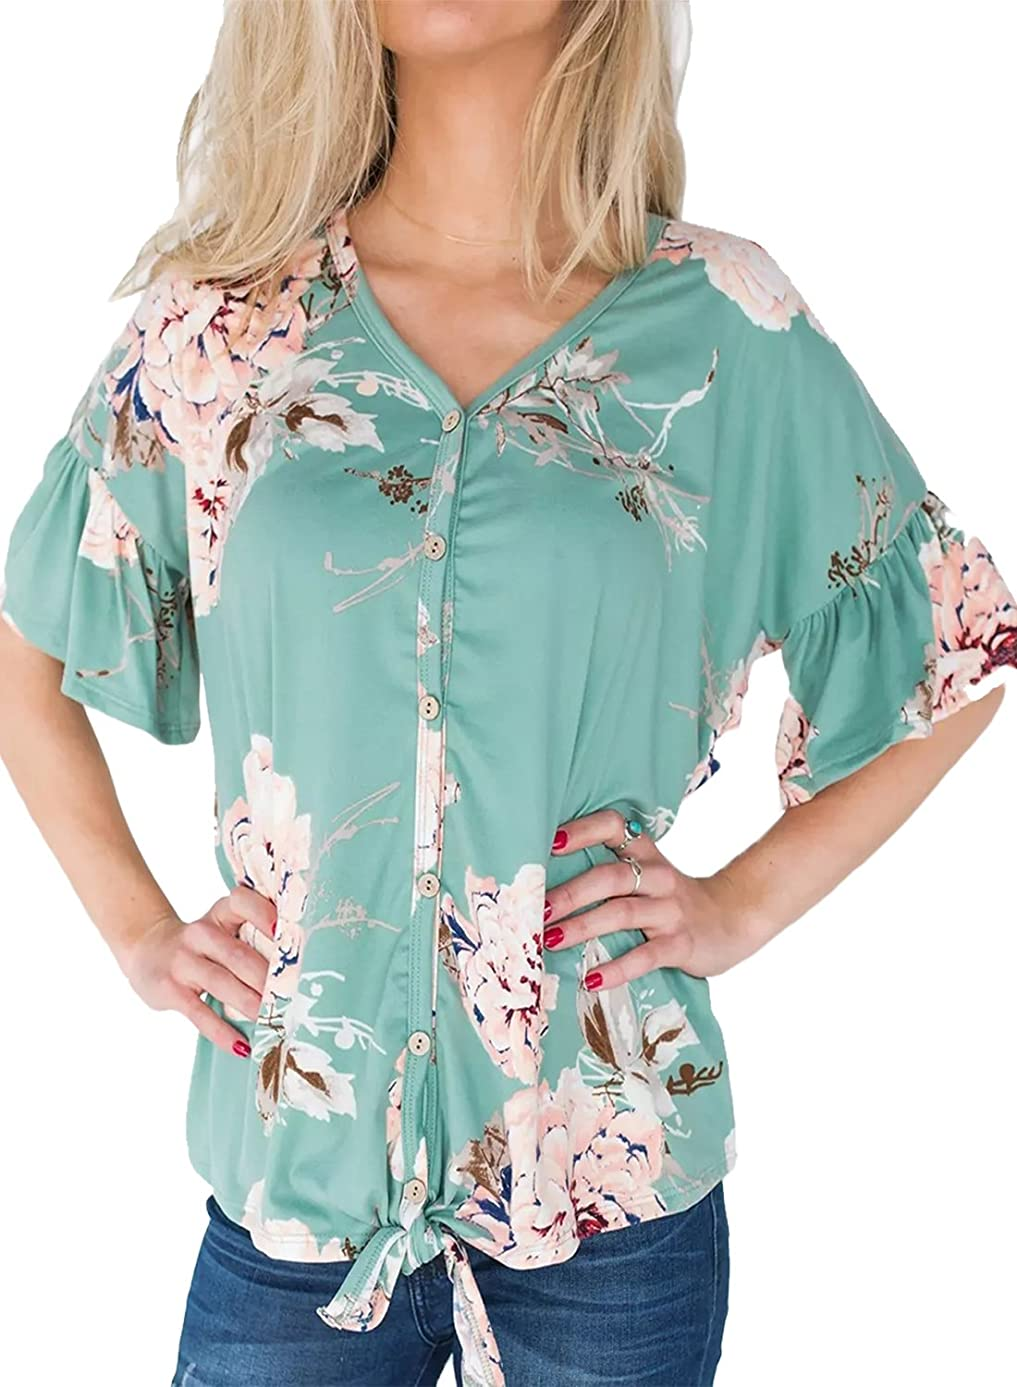 Womens Floral Print Tie Front Tops Ruffle Short Sleeve Casual Blouse